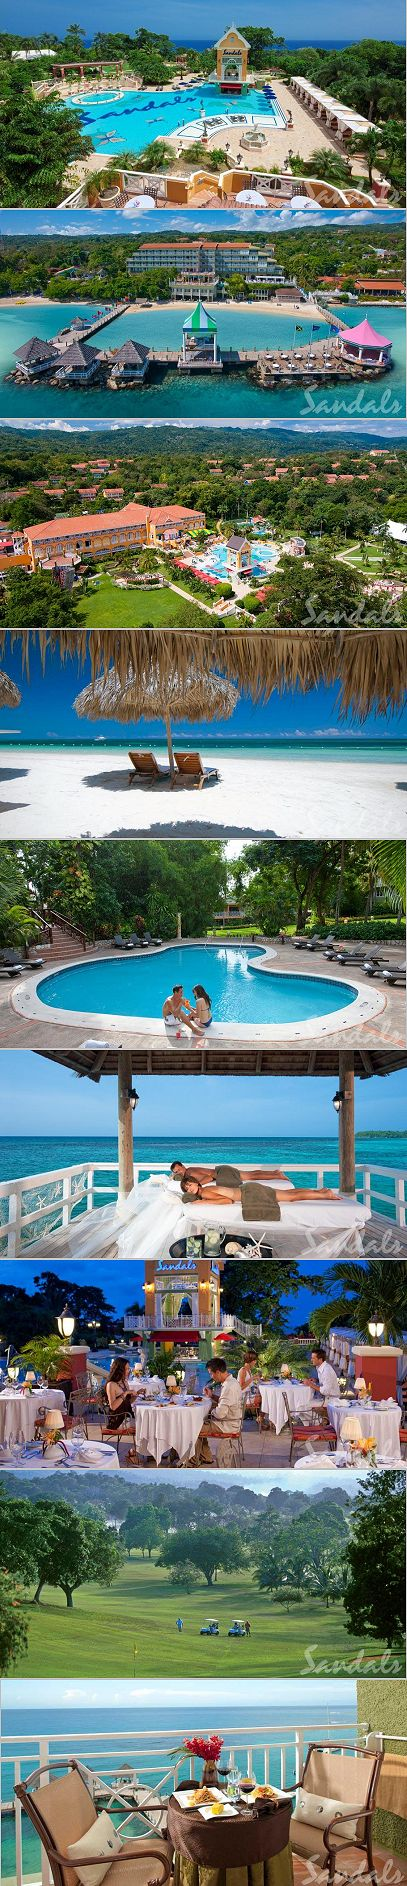 The Top Caribbean All Inclusive Resorts For Couples: Sandals Grande Riviera Review